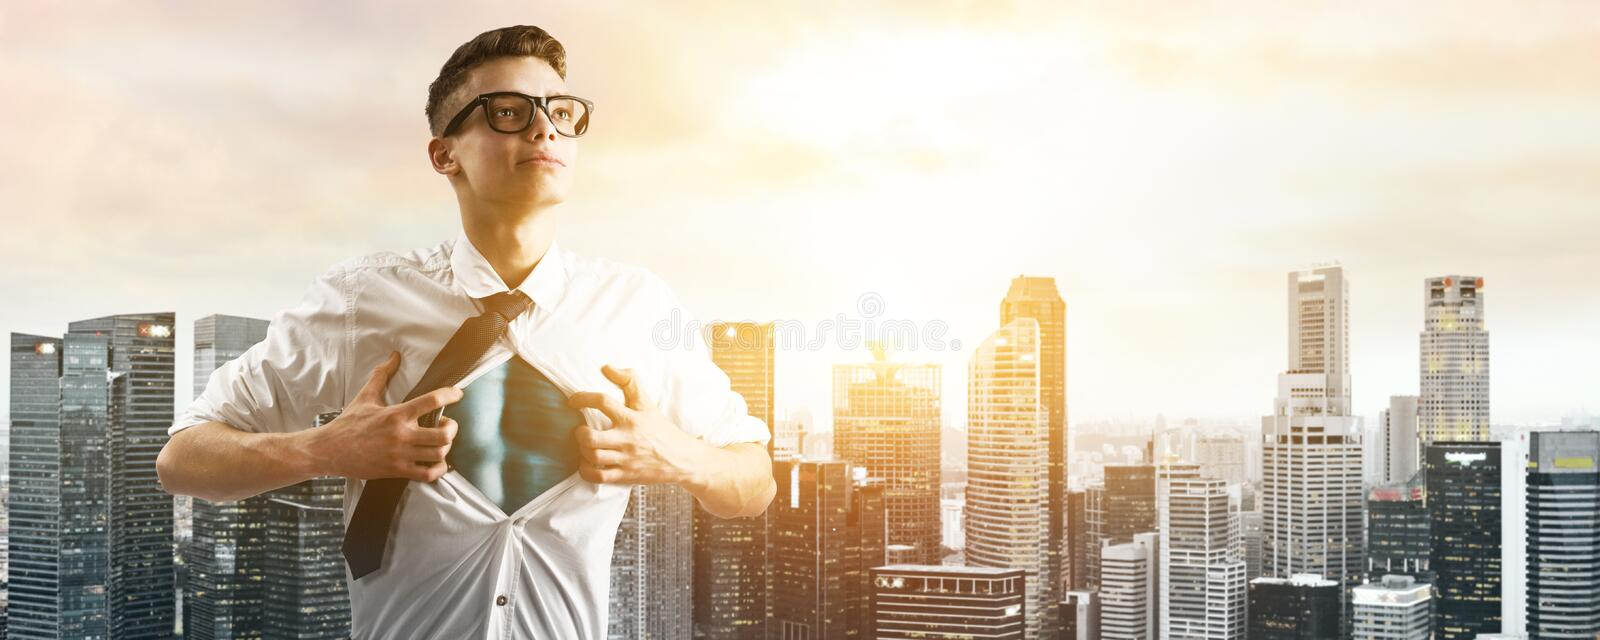 Business super hero hover over city skyline. Business superhero. Young businessman showing super hero suit under his shirt down town on sunset royalty free stock photography